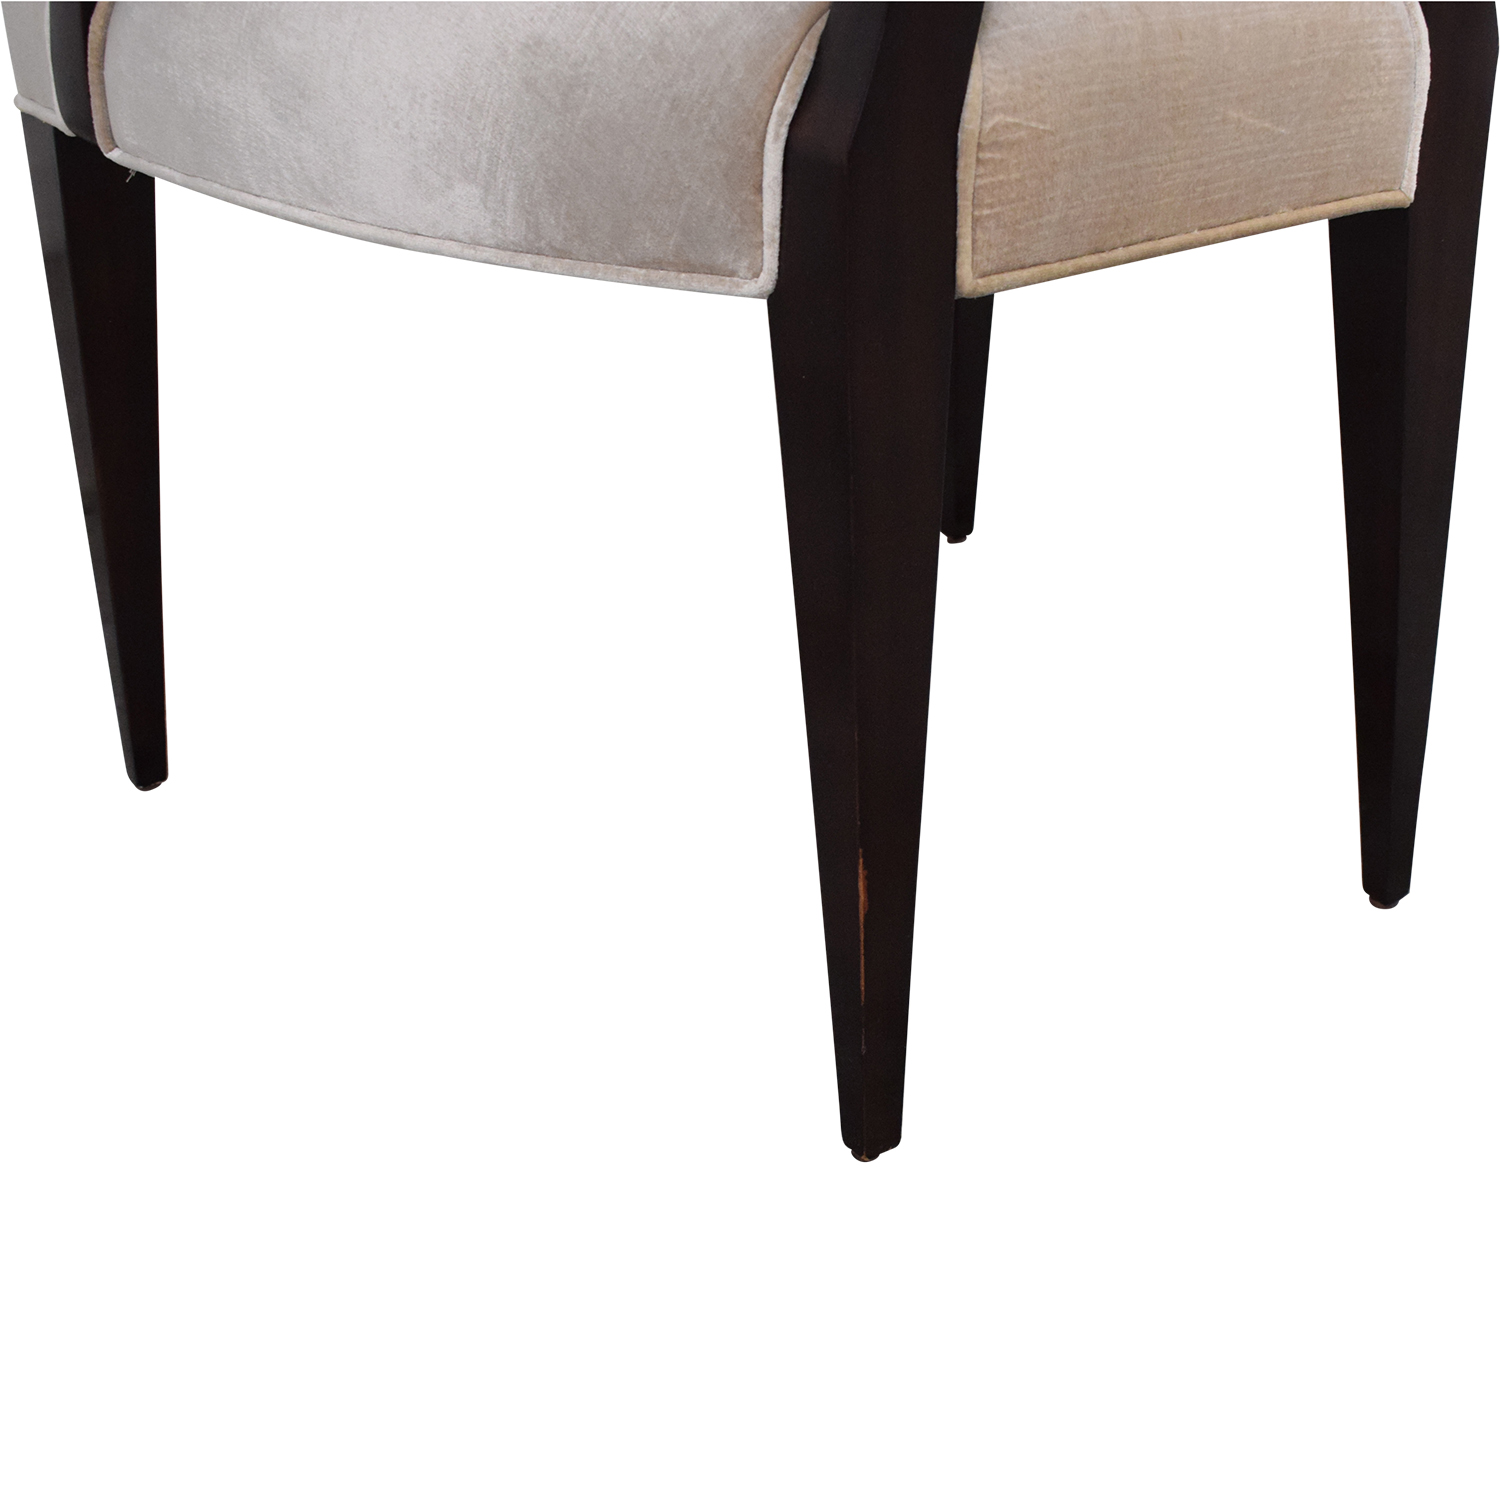 Christopher Guy Christopher Guy Figure 8 Chair